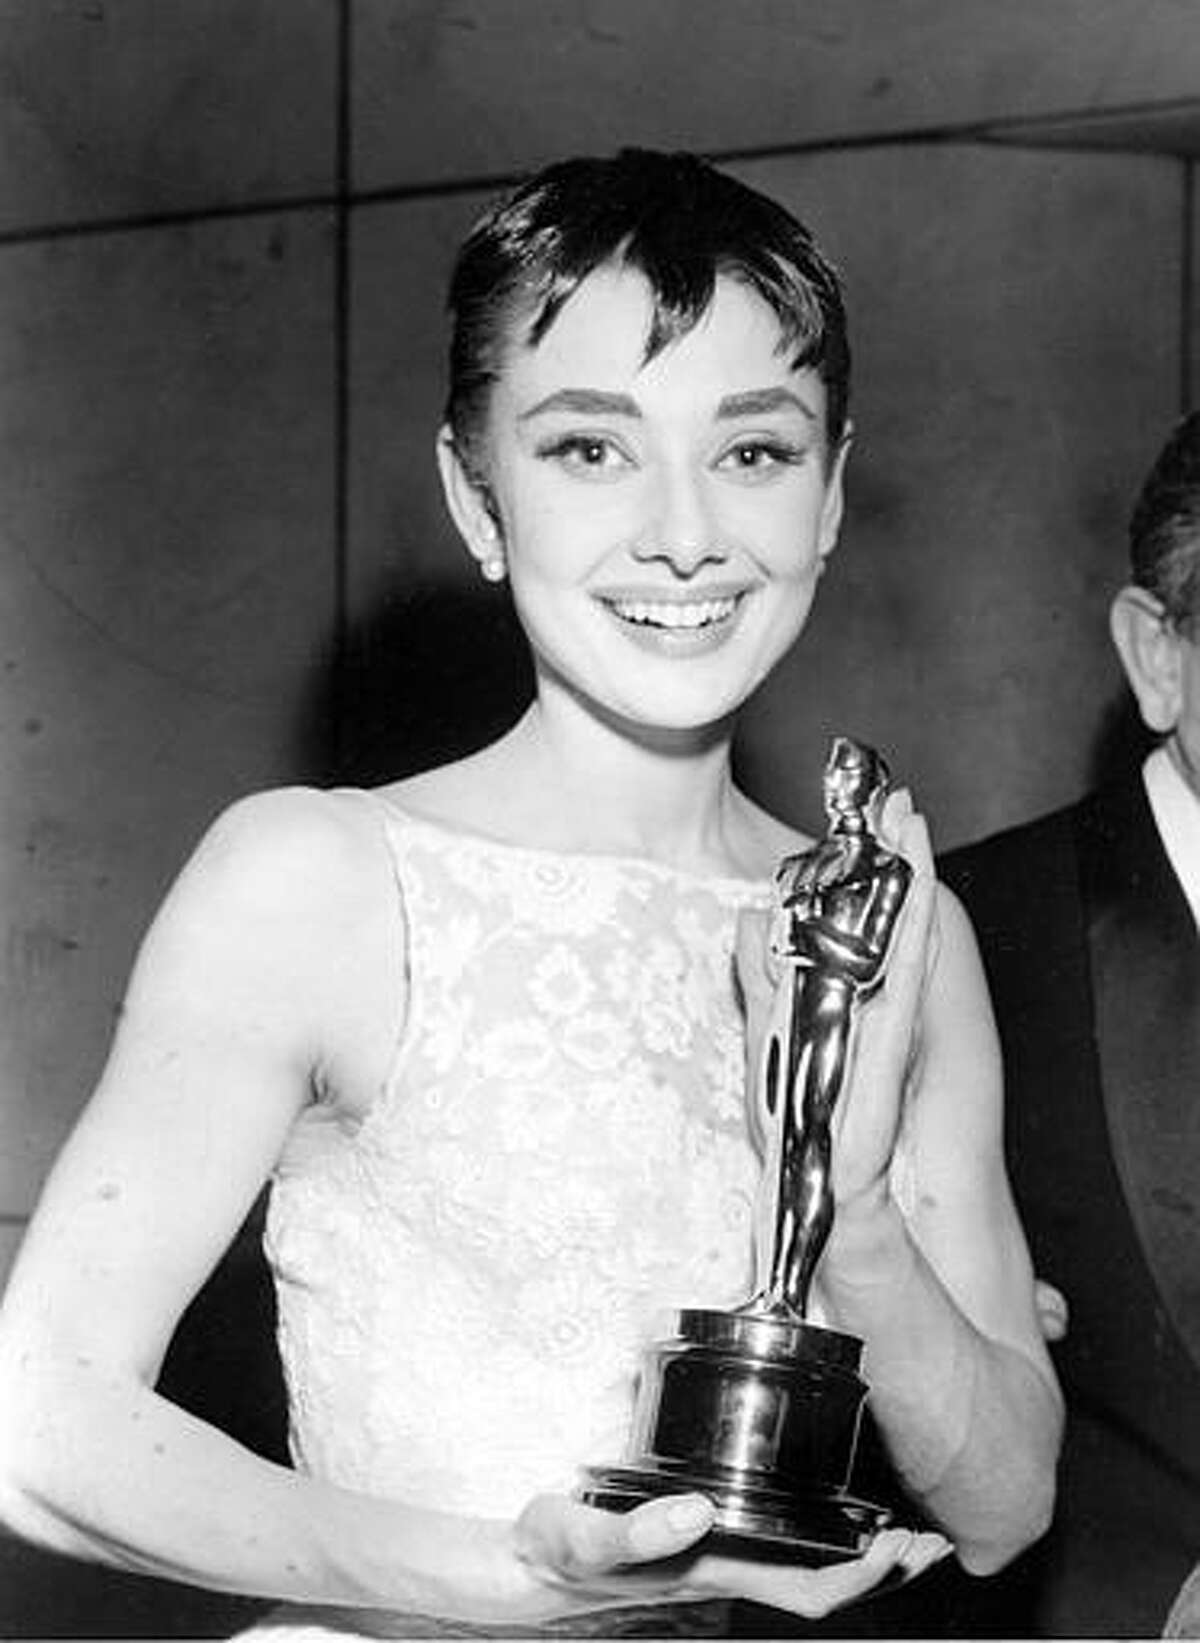 """Actress Audrey Hepburn poses with her Oscar statuette at the annual Academy Awards presentations in New York, on March 24, 1954. Hepburn was awarded best actress for her only first movie starring role, the portrayal of a free-spirited Princess in the motion picture """"Roman Holiday."""" Associated Press"""